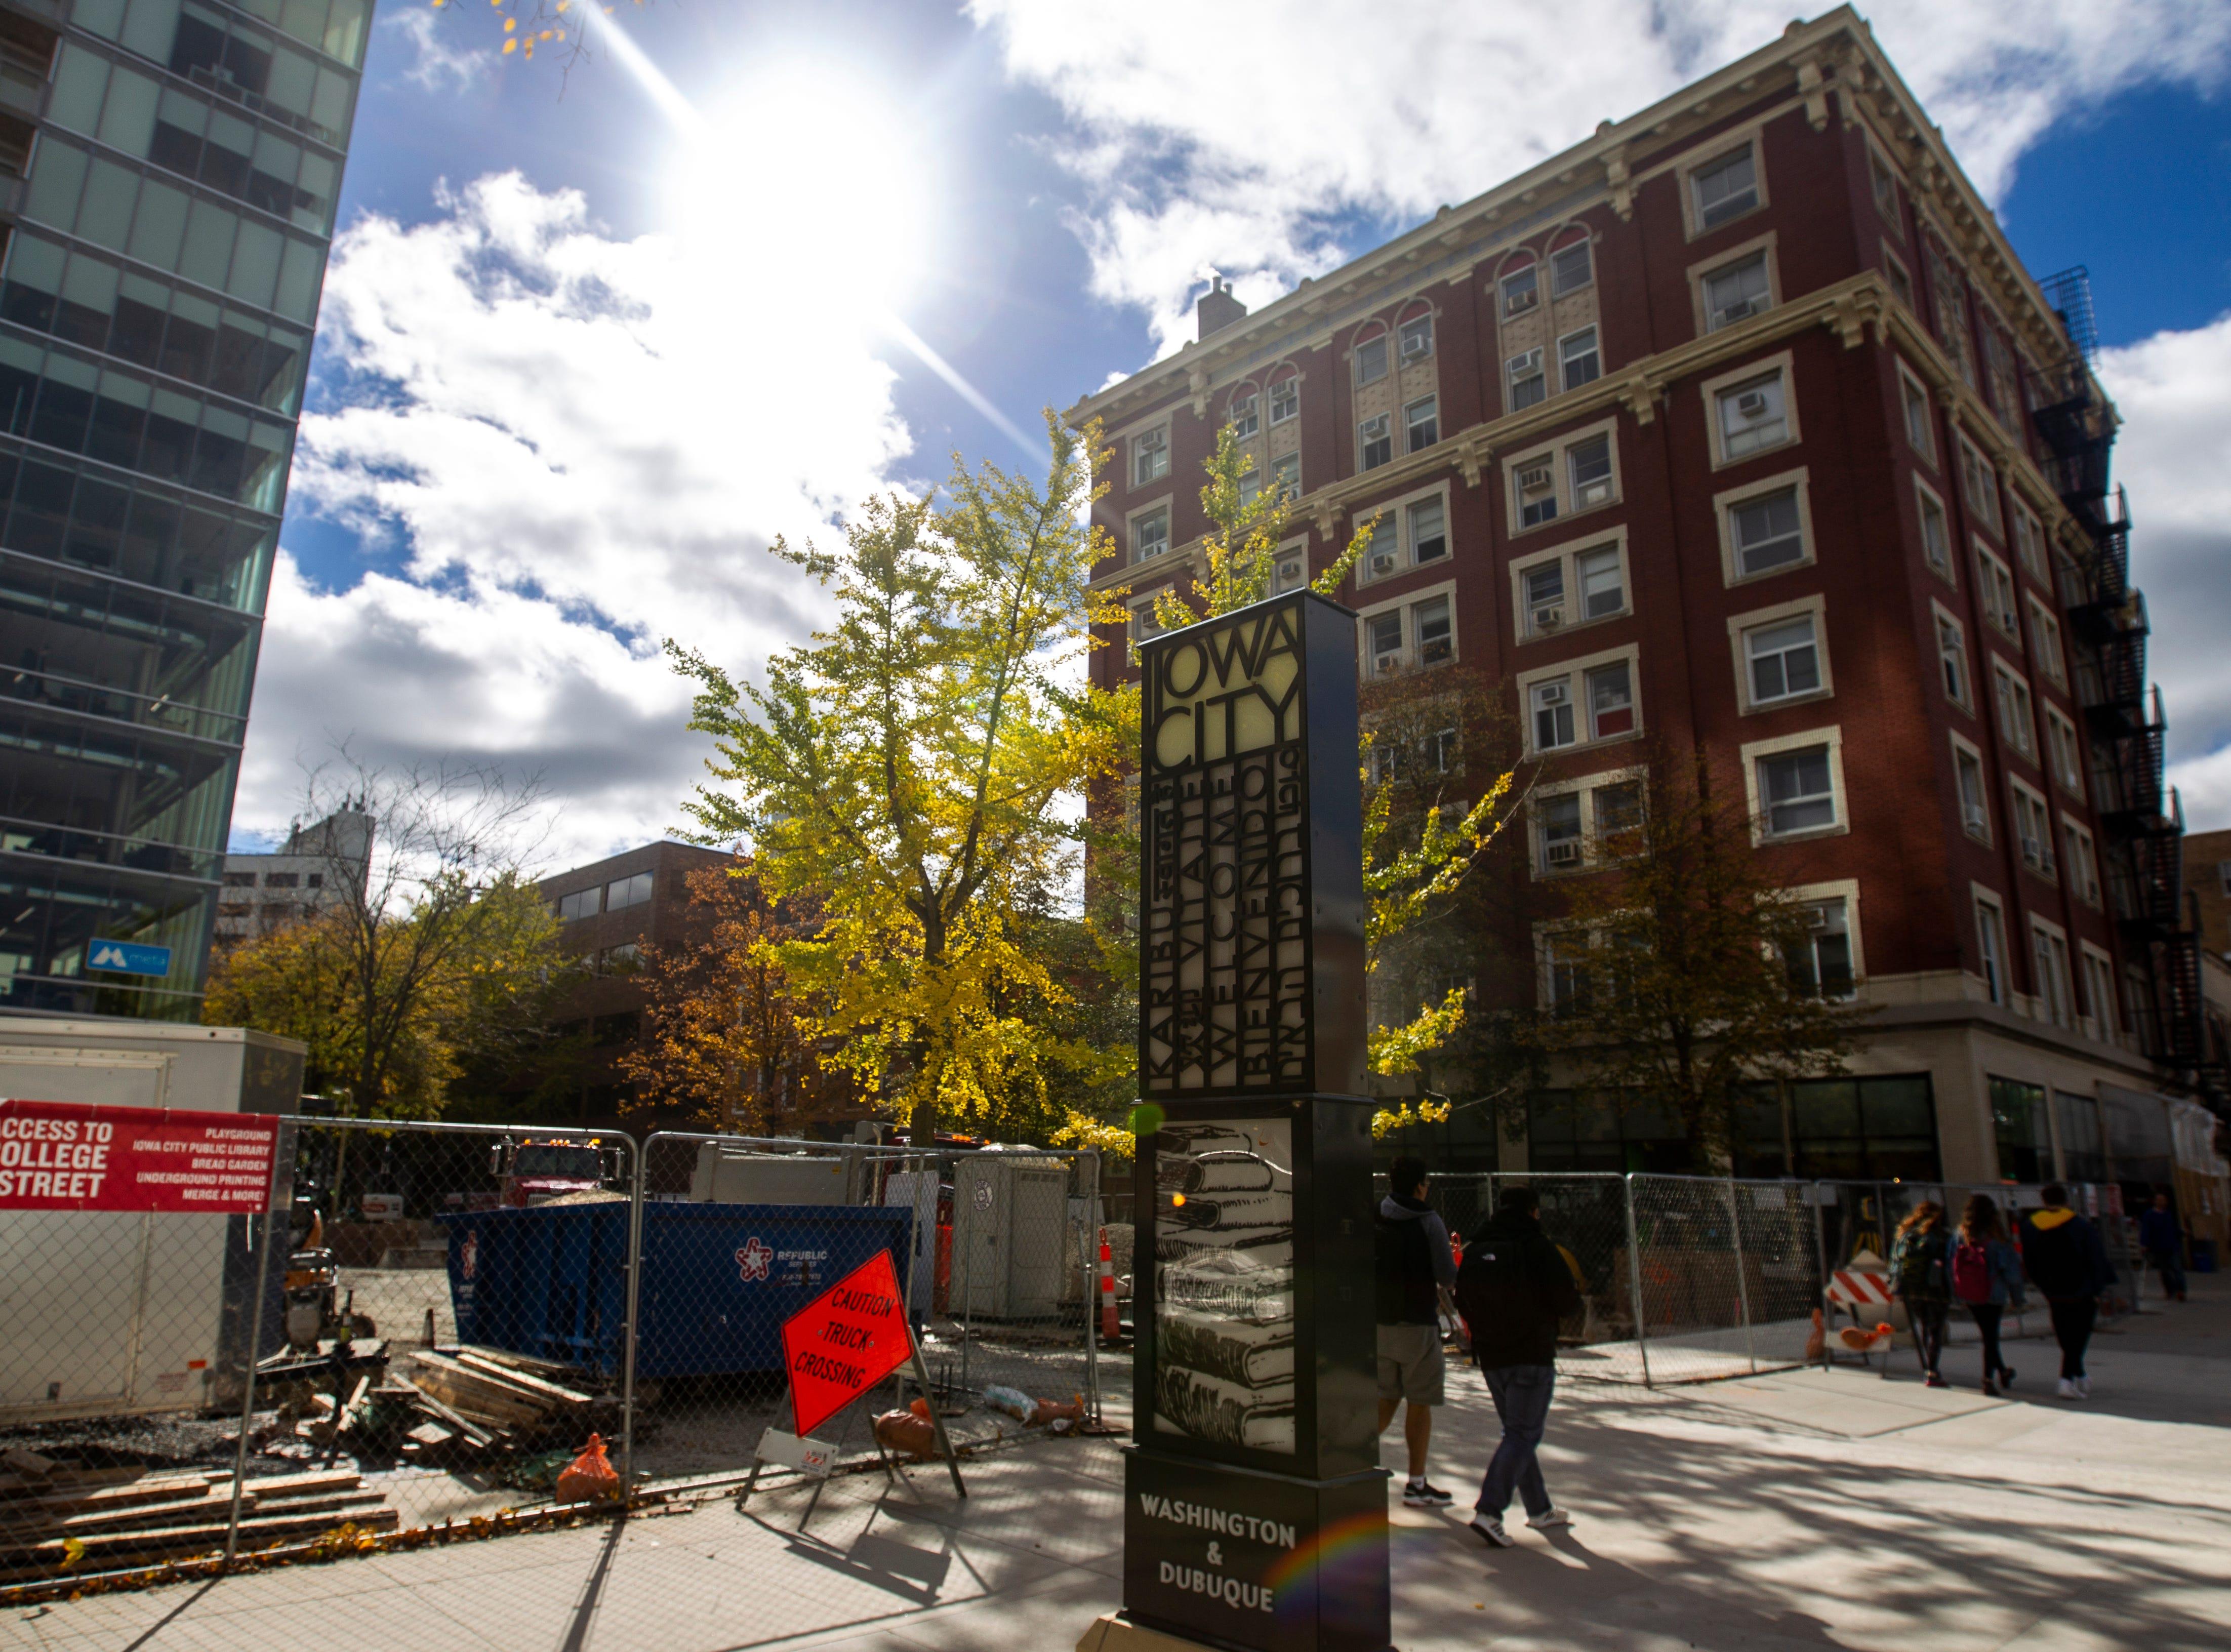 People walk along Washington Street towards the Jefferson Building while construction continues on updates to the pedestrian mall on Thursday afternoon, Oct. 11, 2018, in downtown Iowa City.